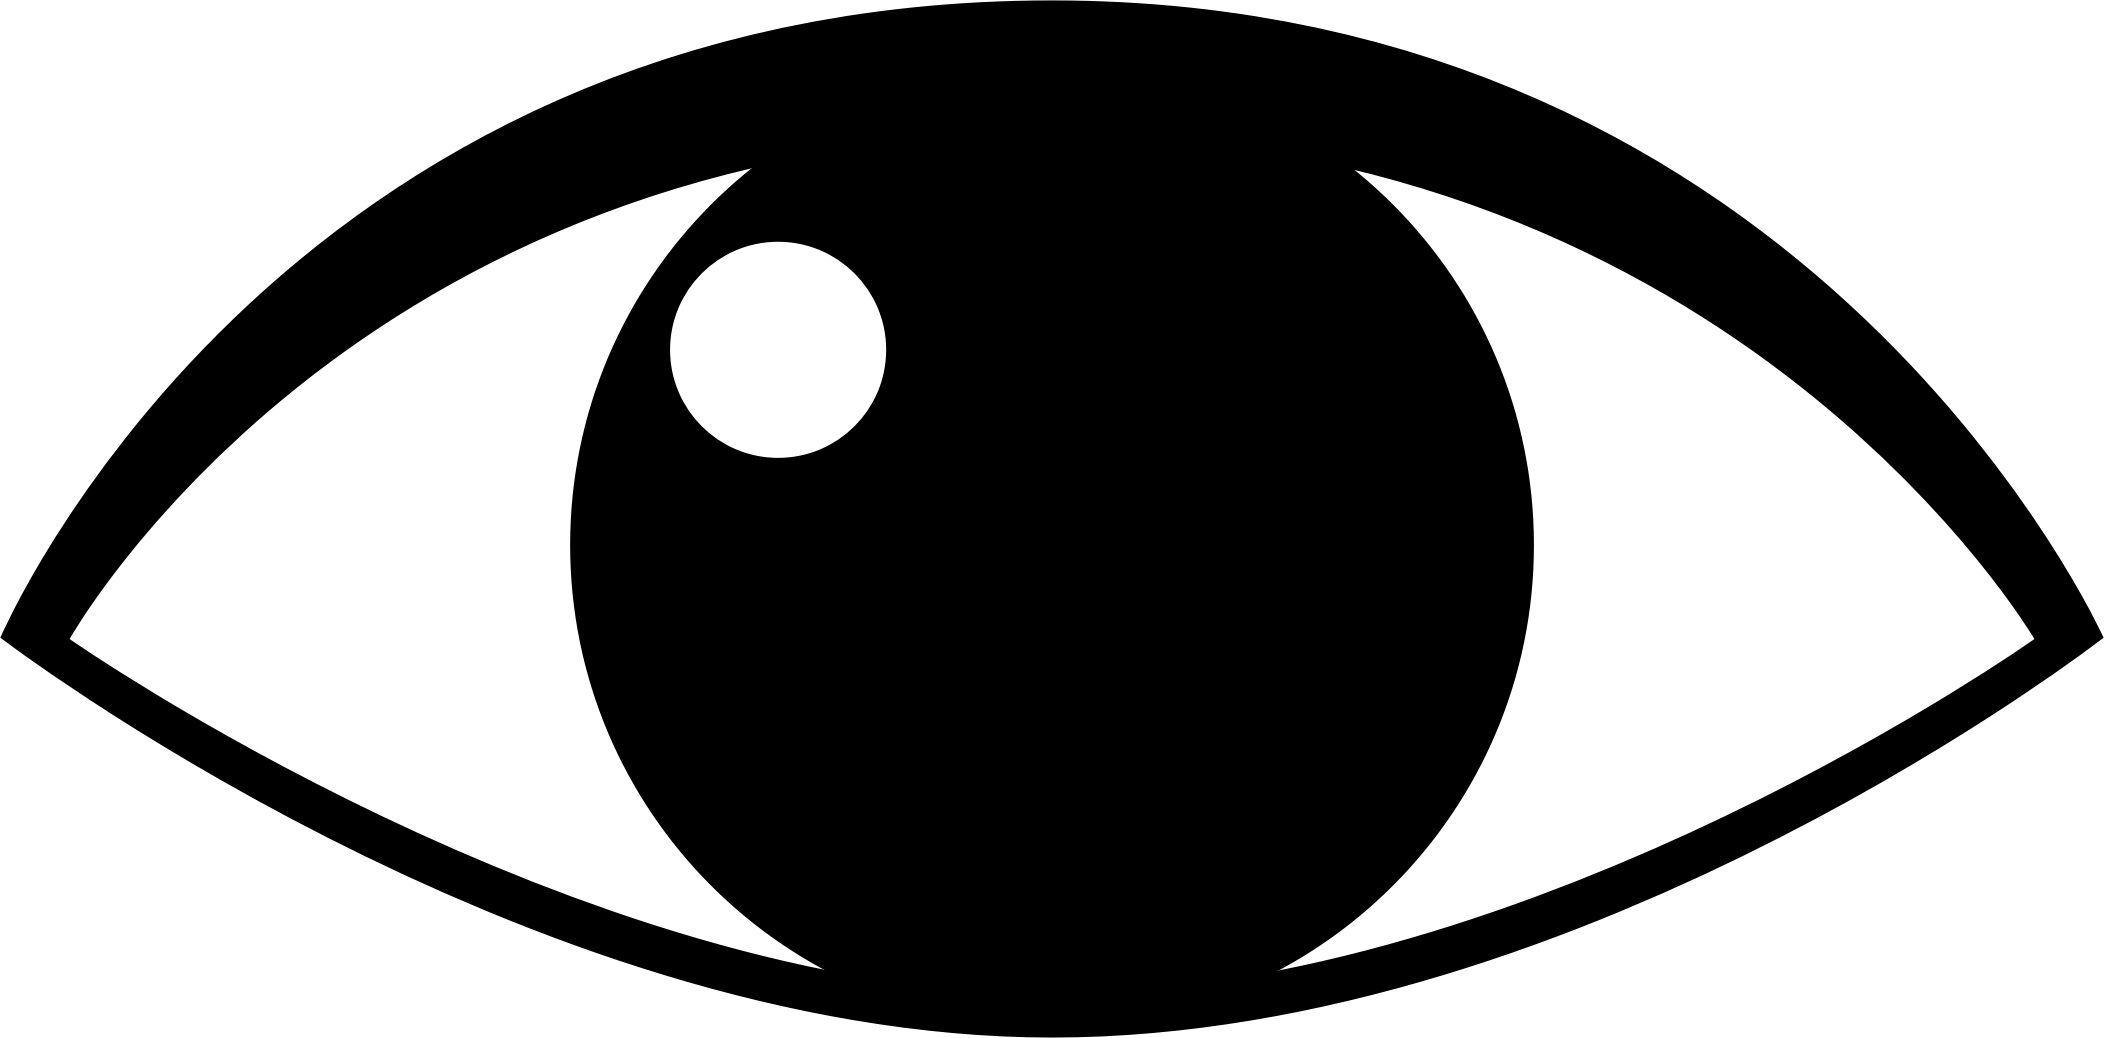 Eye clipart png. Collection of eyeball